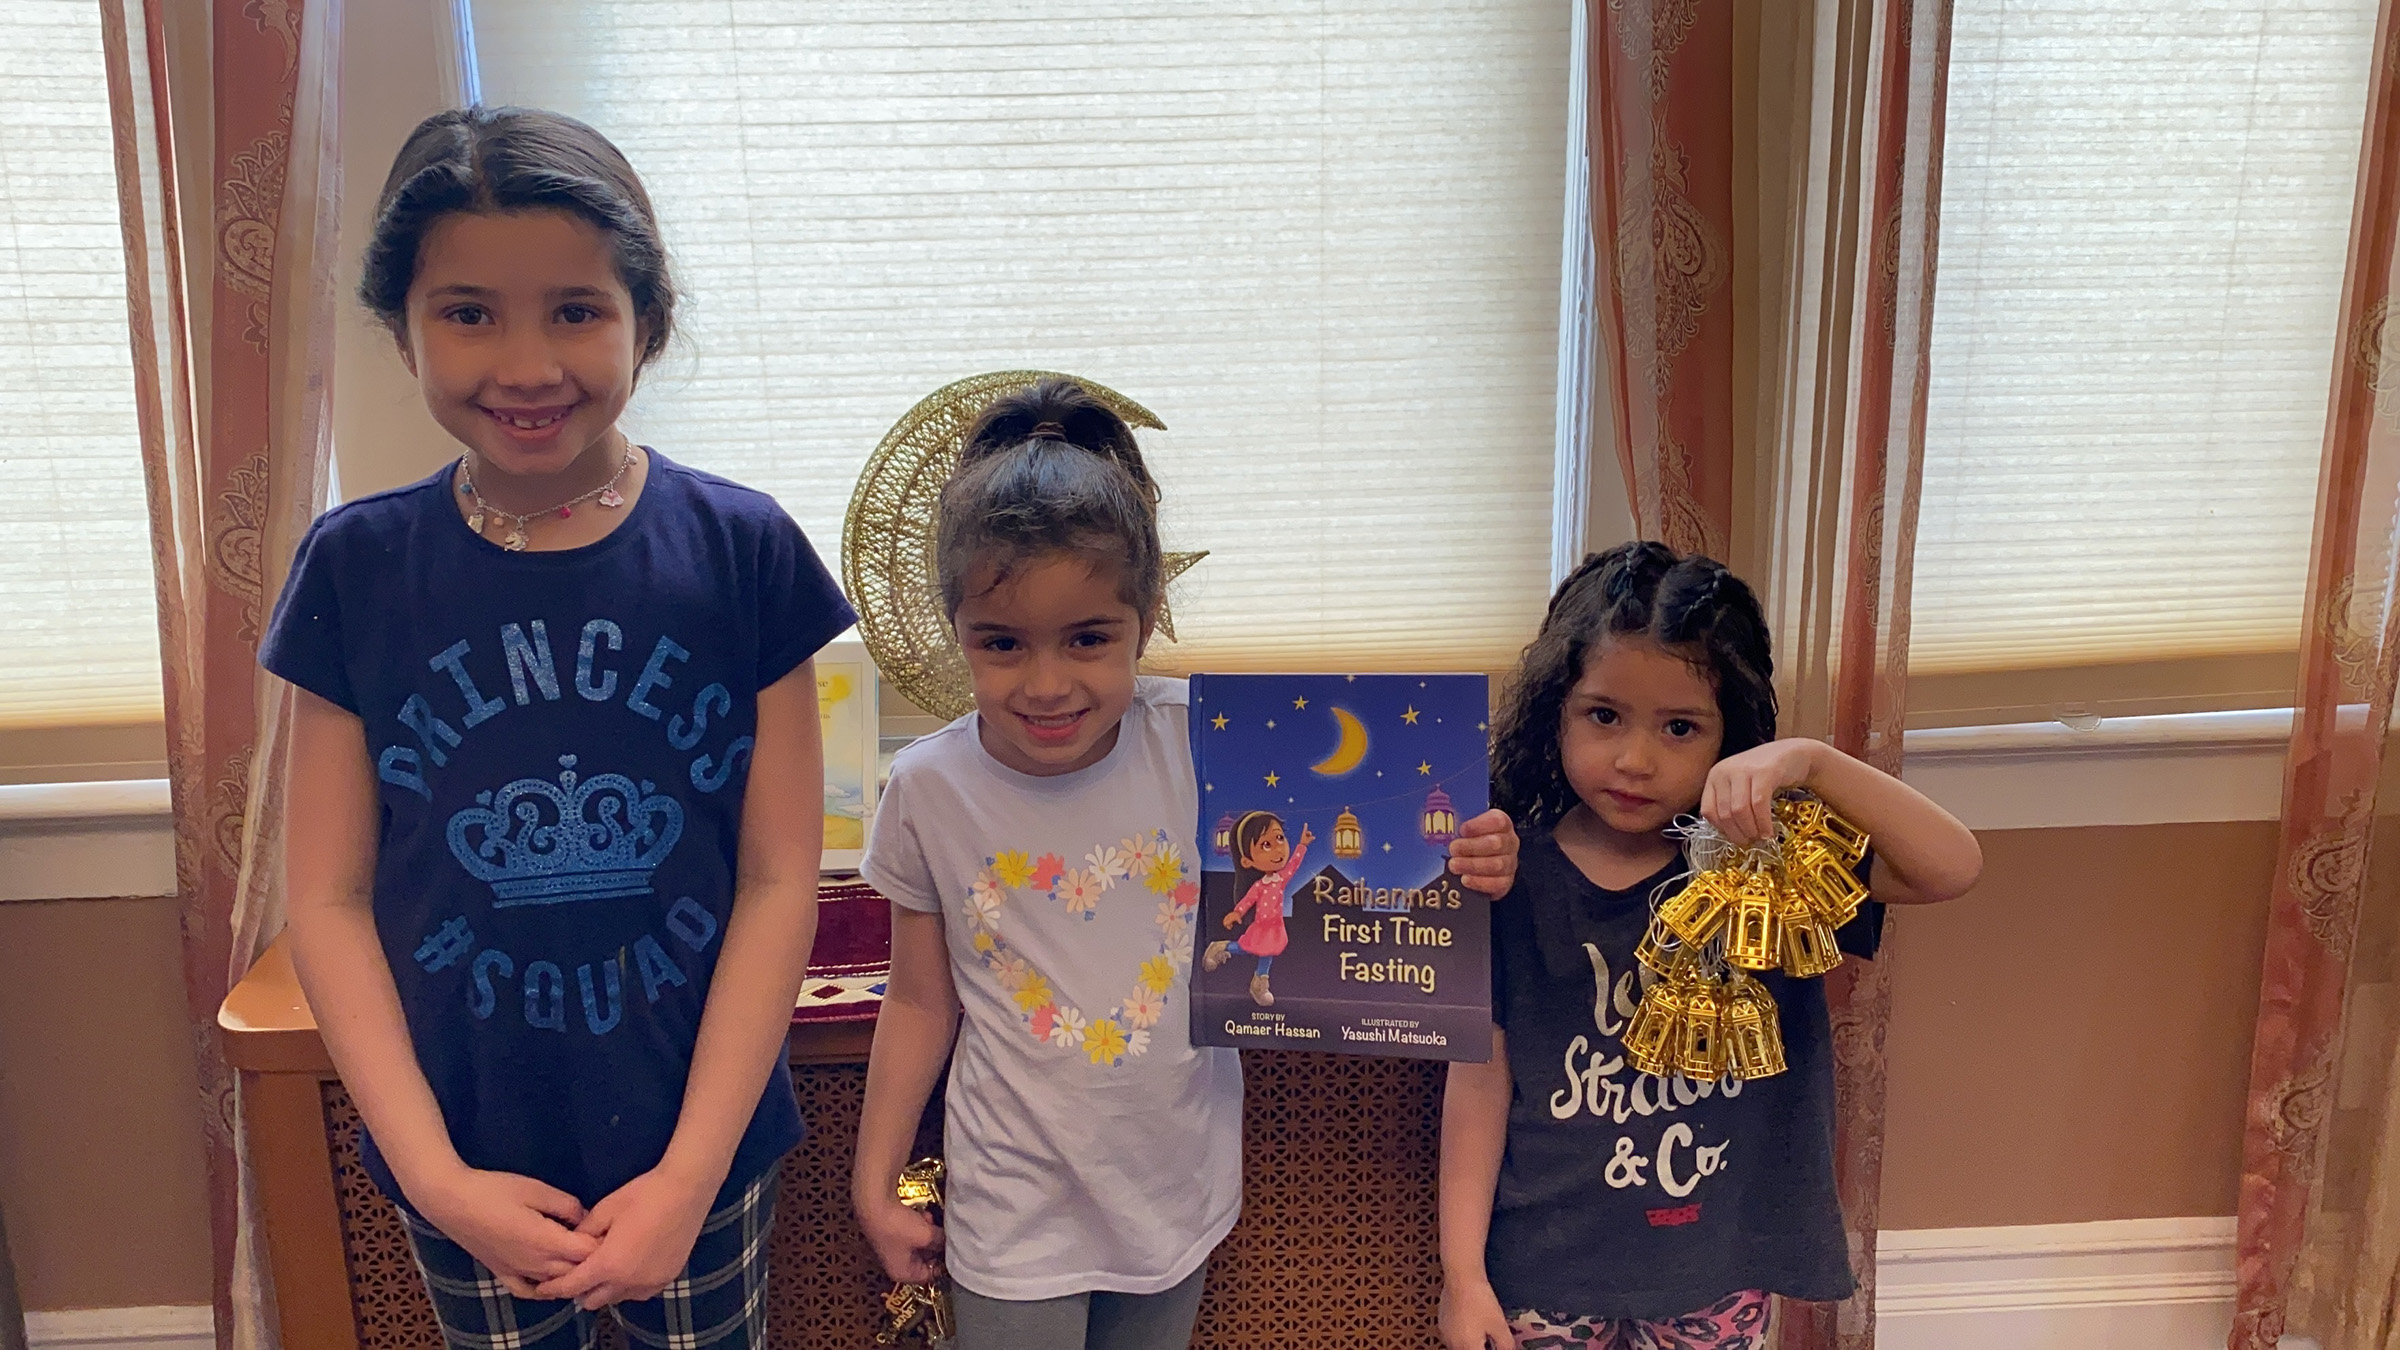 Emily, Leena and Elaina Mejahed decorating their home in preparation for the Holy month of Ramadan, on April 22, 2020.